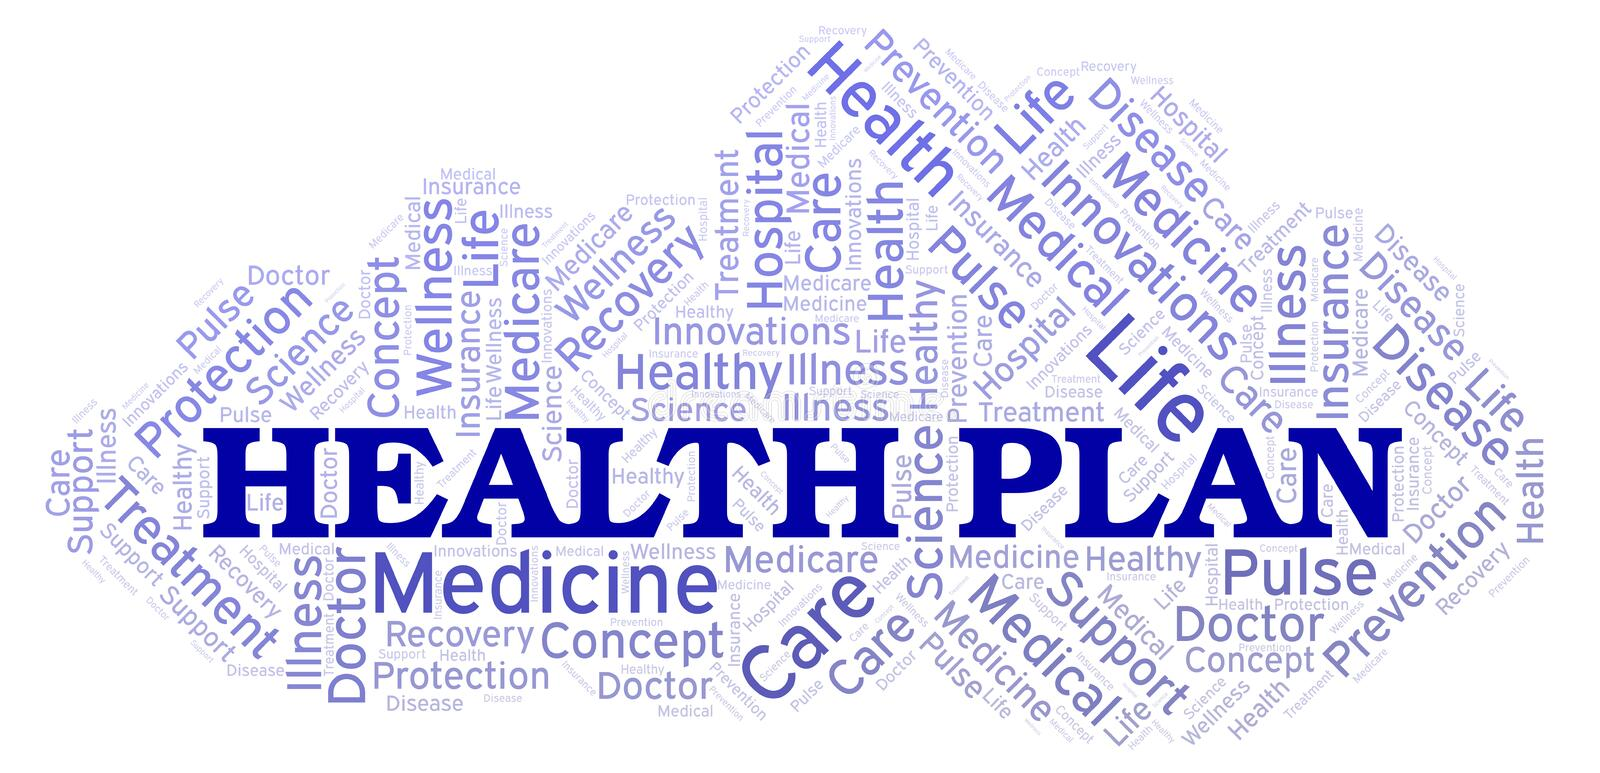 Health Plan word cloud vector illustration